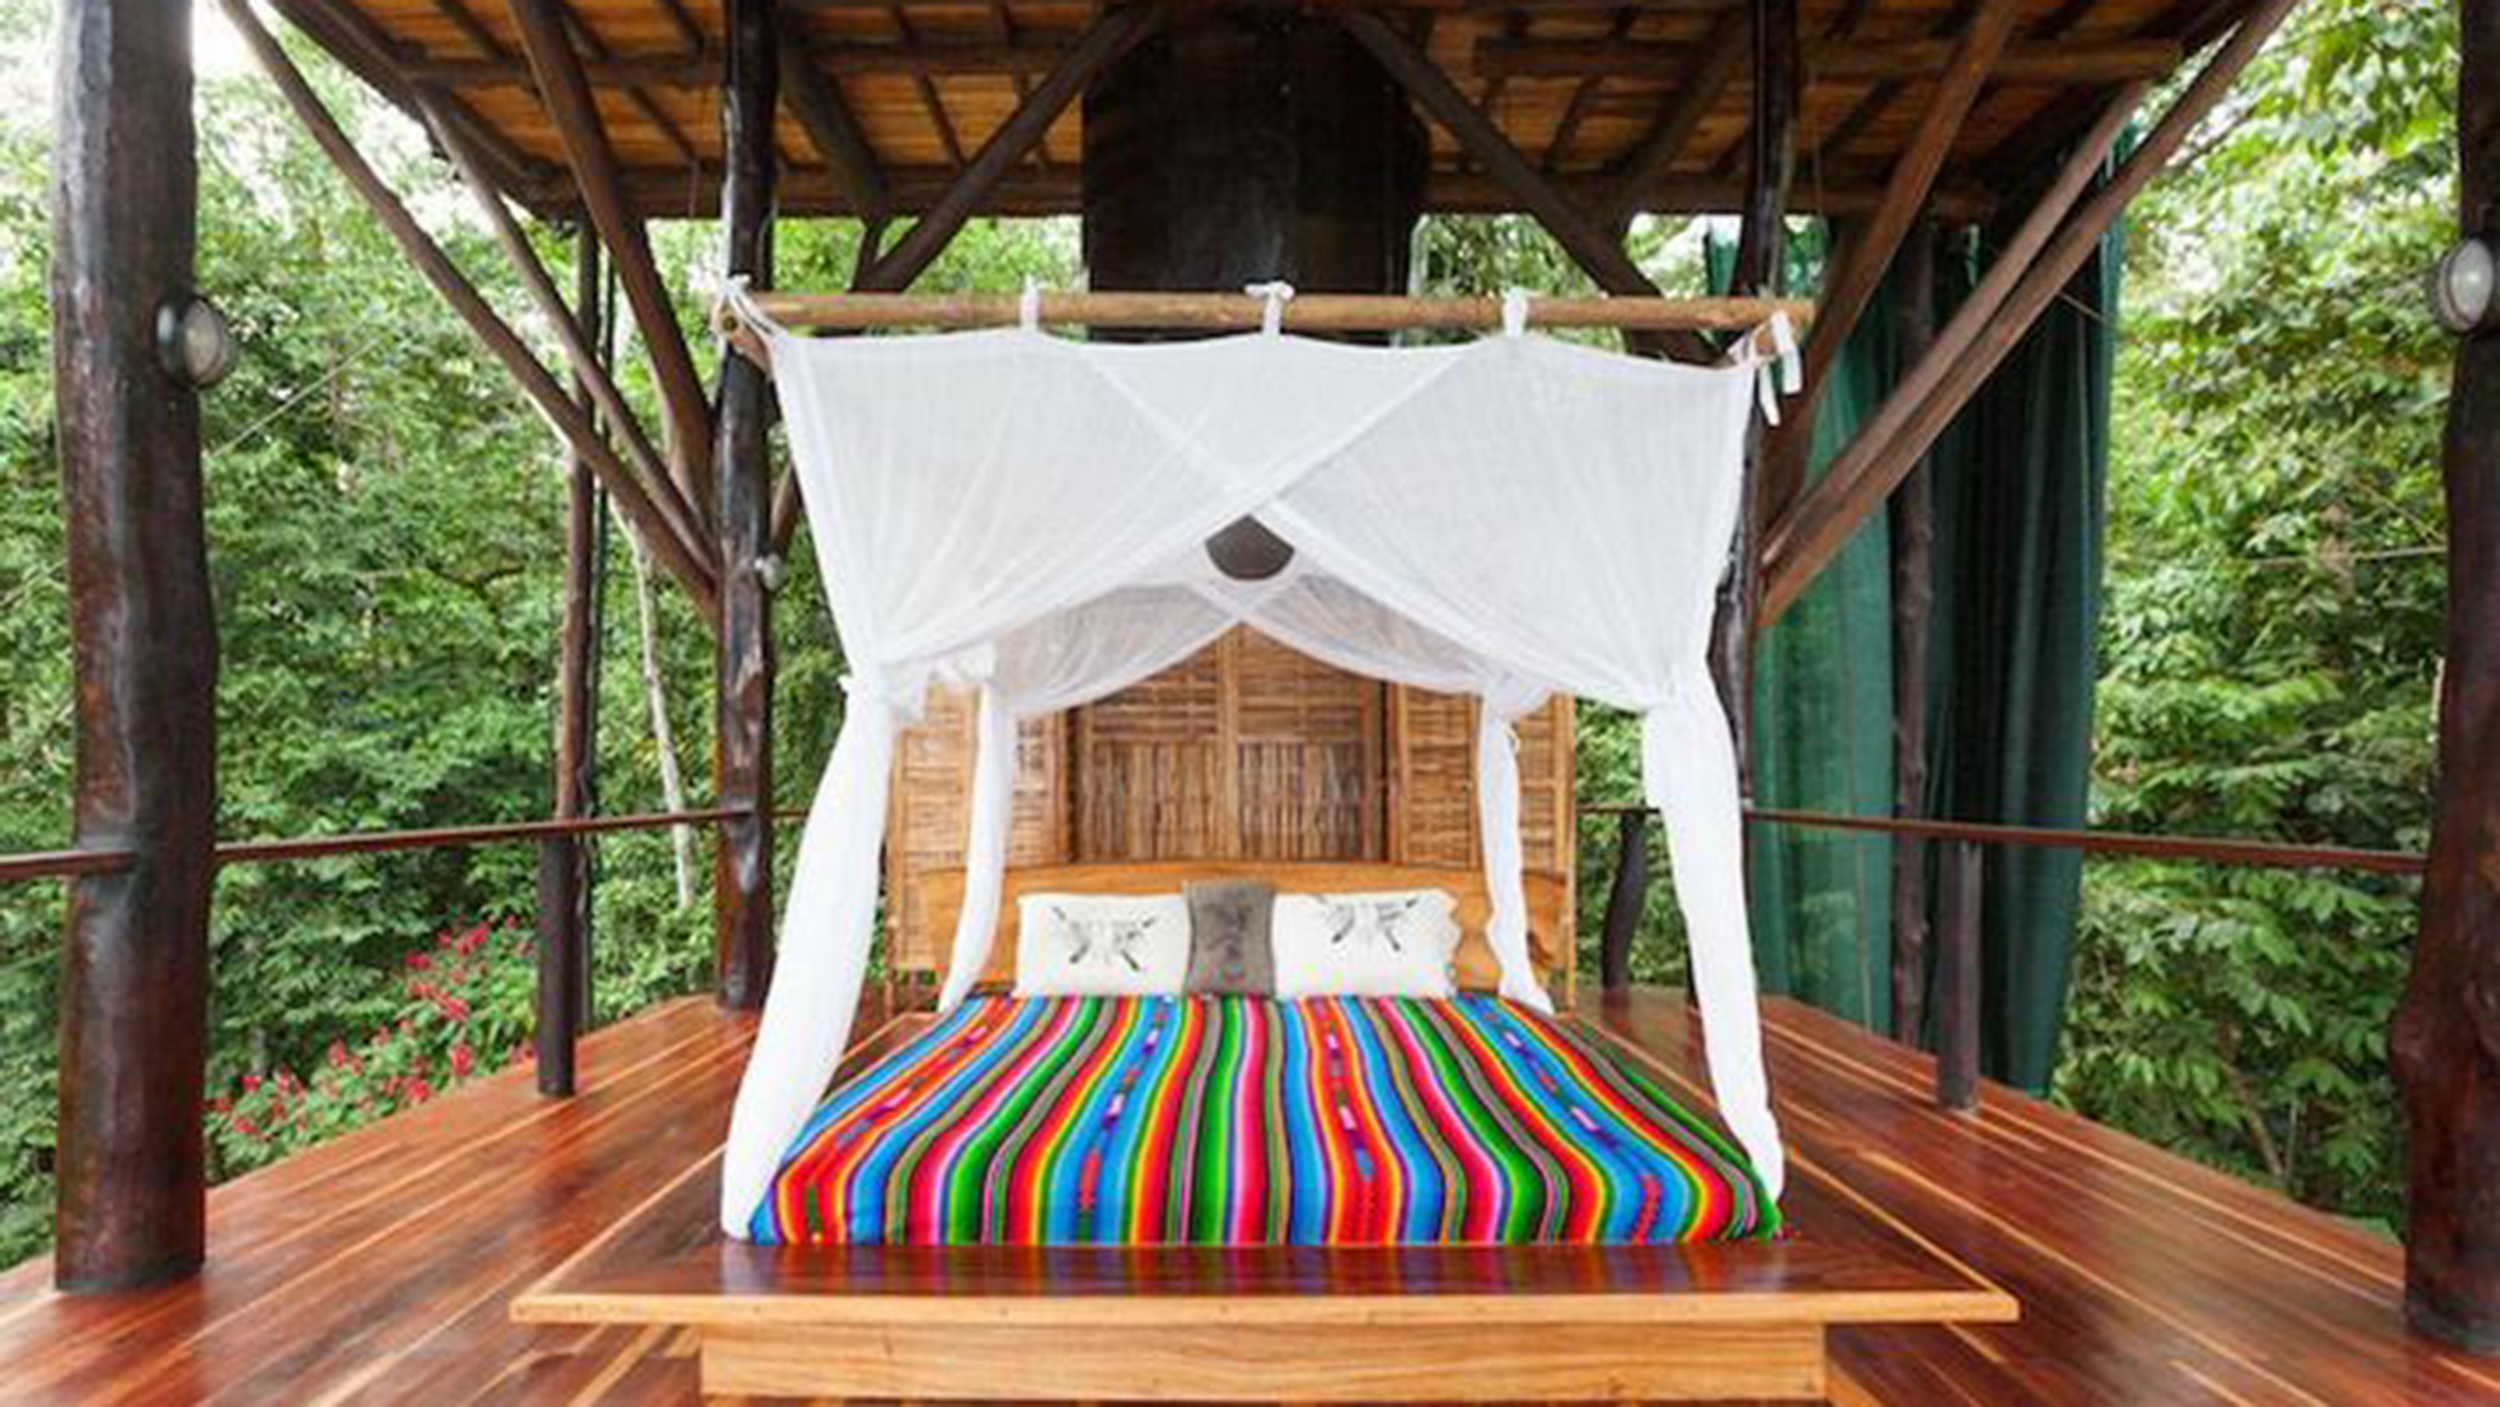 See Inside S Gorgeous 3 Story Treehouse In The Jungle Of Costa Rica